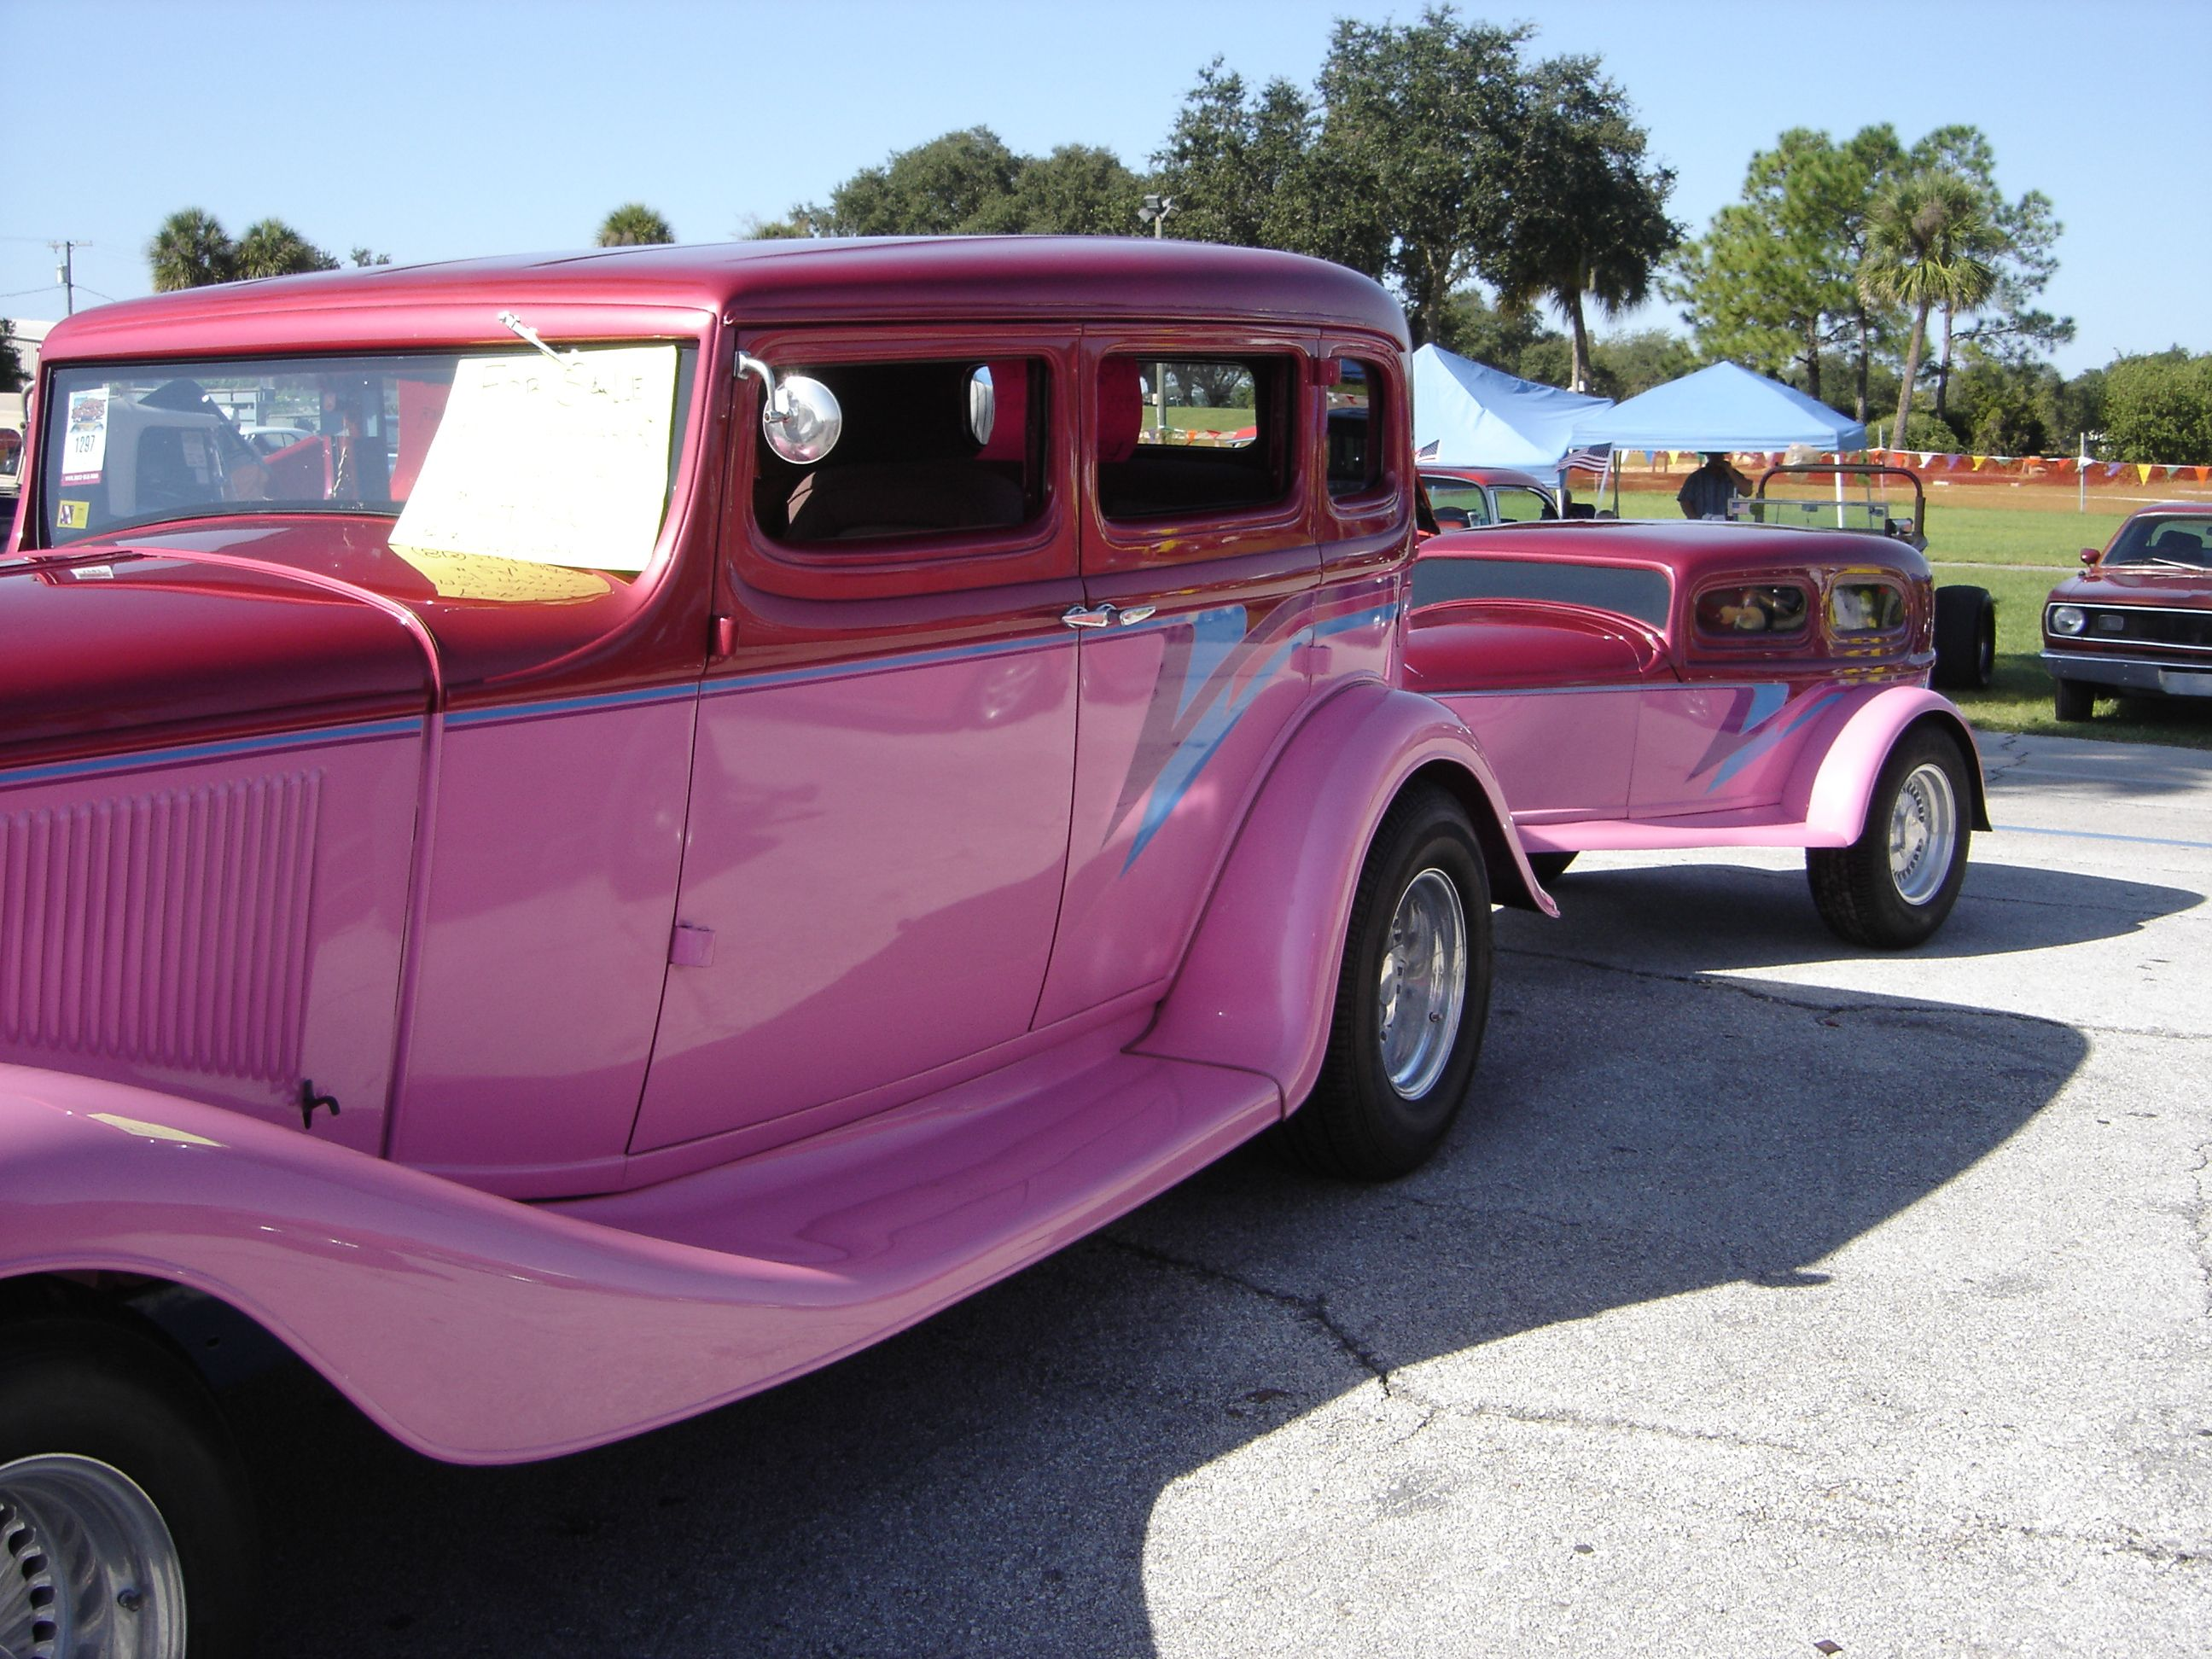 Street Rod Nationals Tampa Fl. | Street Rod & Car Shows | Pinterest ...